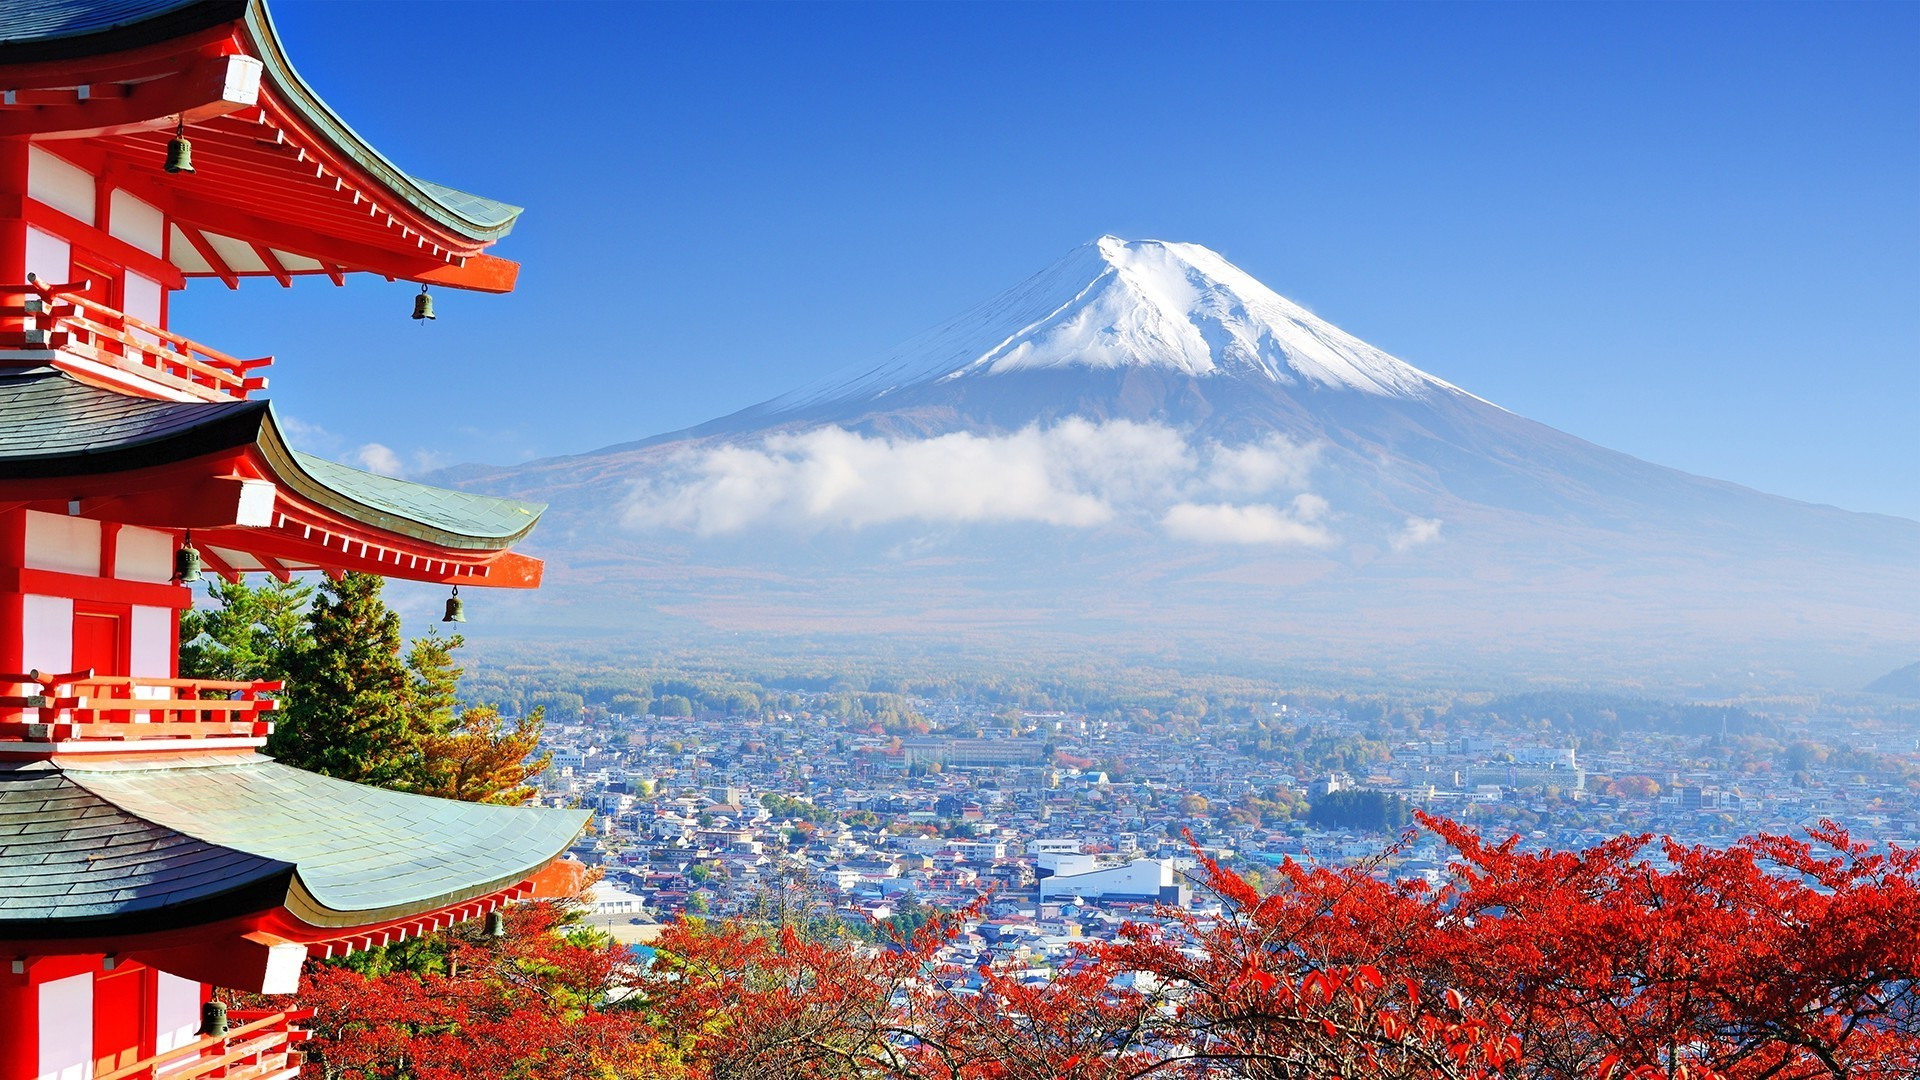 Japan Mount Fuji Building Nature Asian Architecture Mount Fuji Honshu Island Japan 1920x1080 Download Hd Wallpaper Wallpapertip